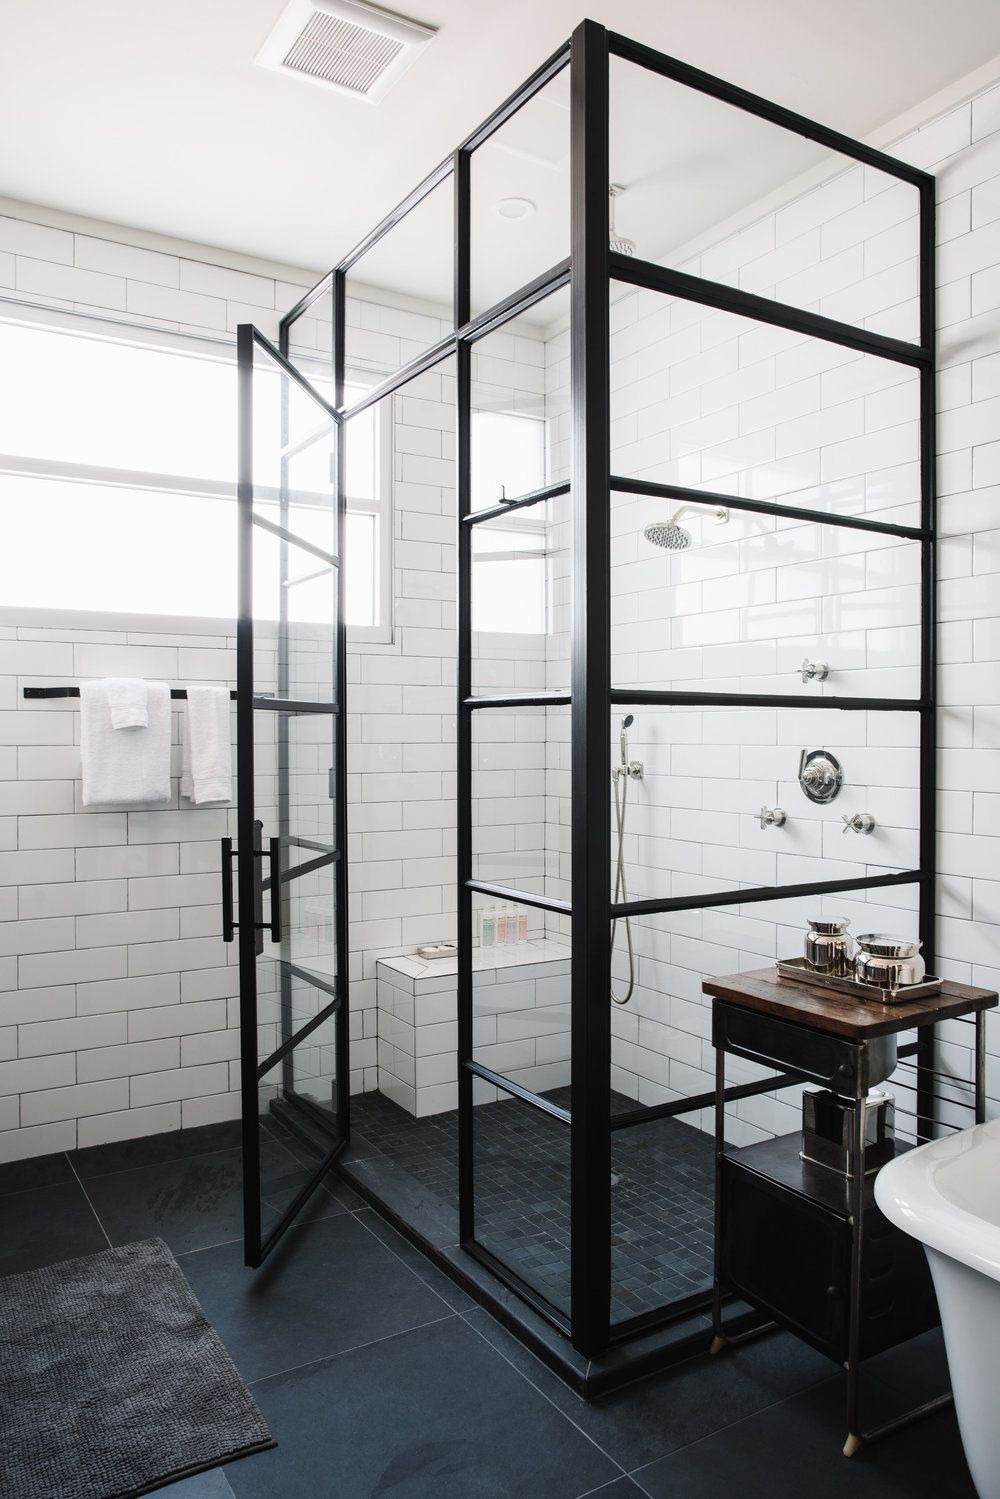 These Showers are the New Big Thing in Bathrooms | Windfang, Bäder ...